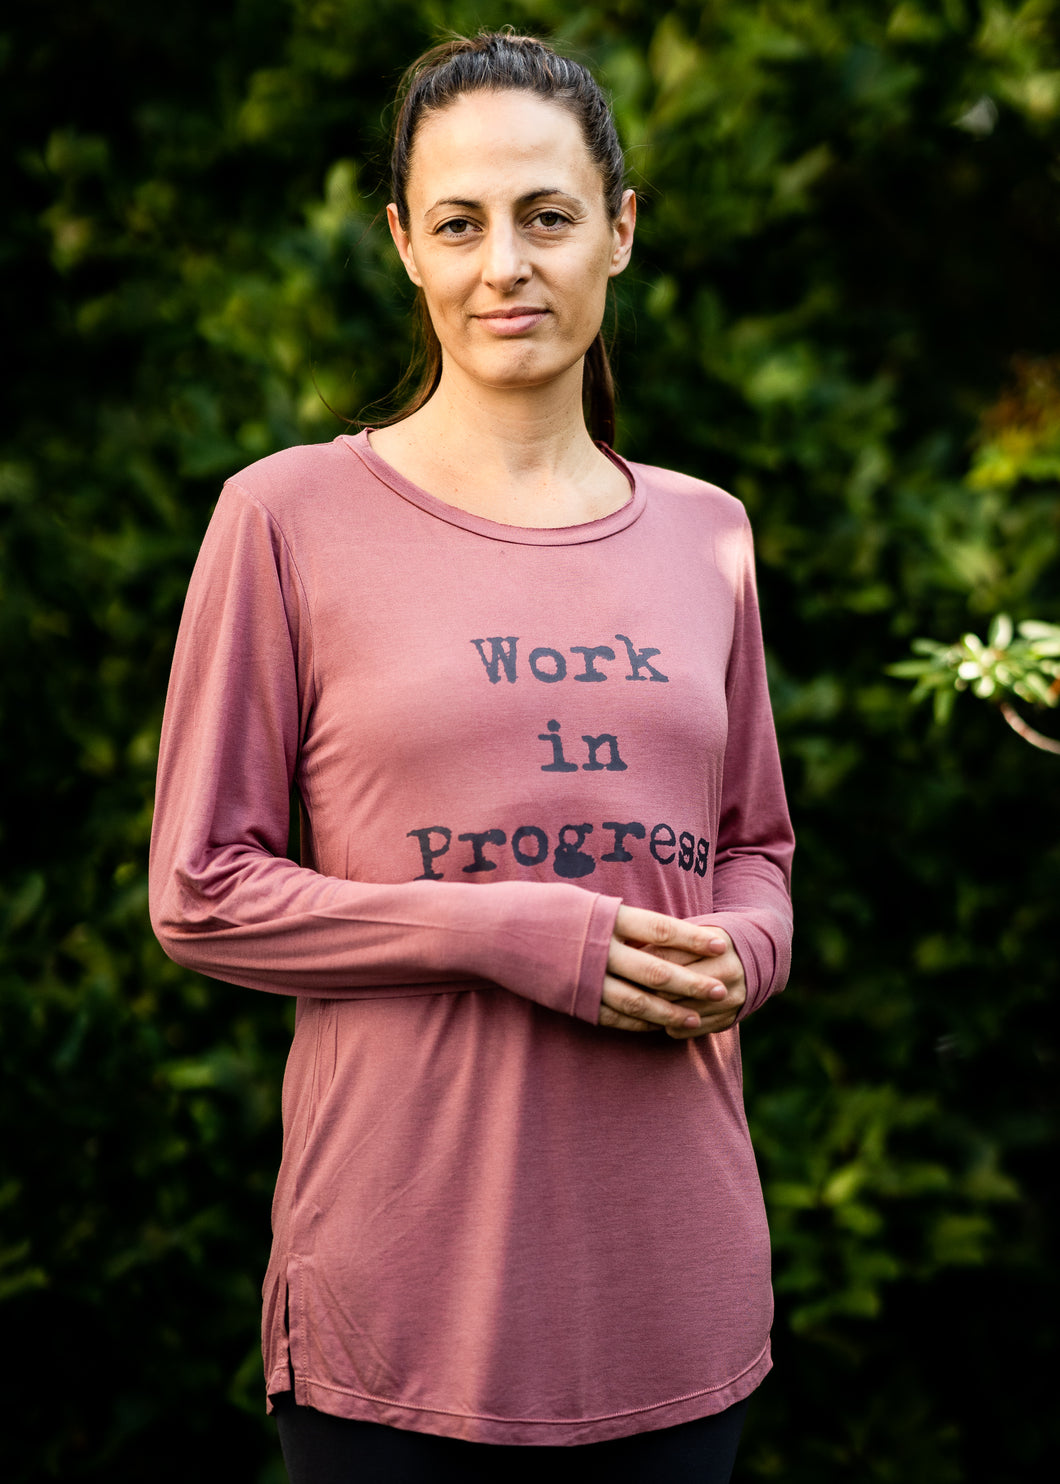 Organic Bamboo girls L/S t-shirt : Work in Progress, Rose /Dk Grey